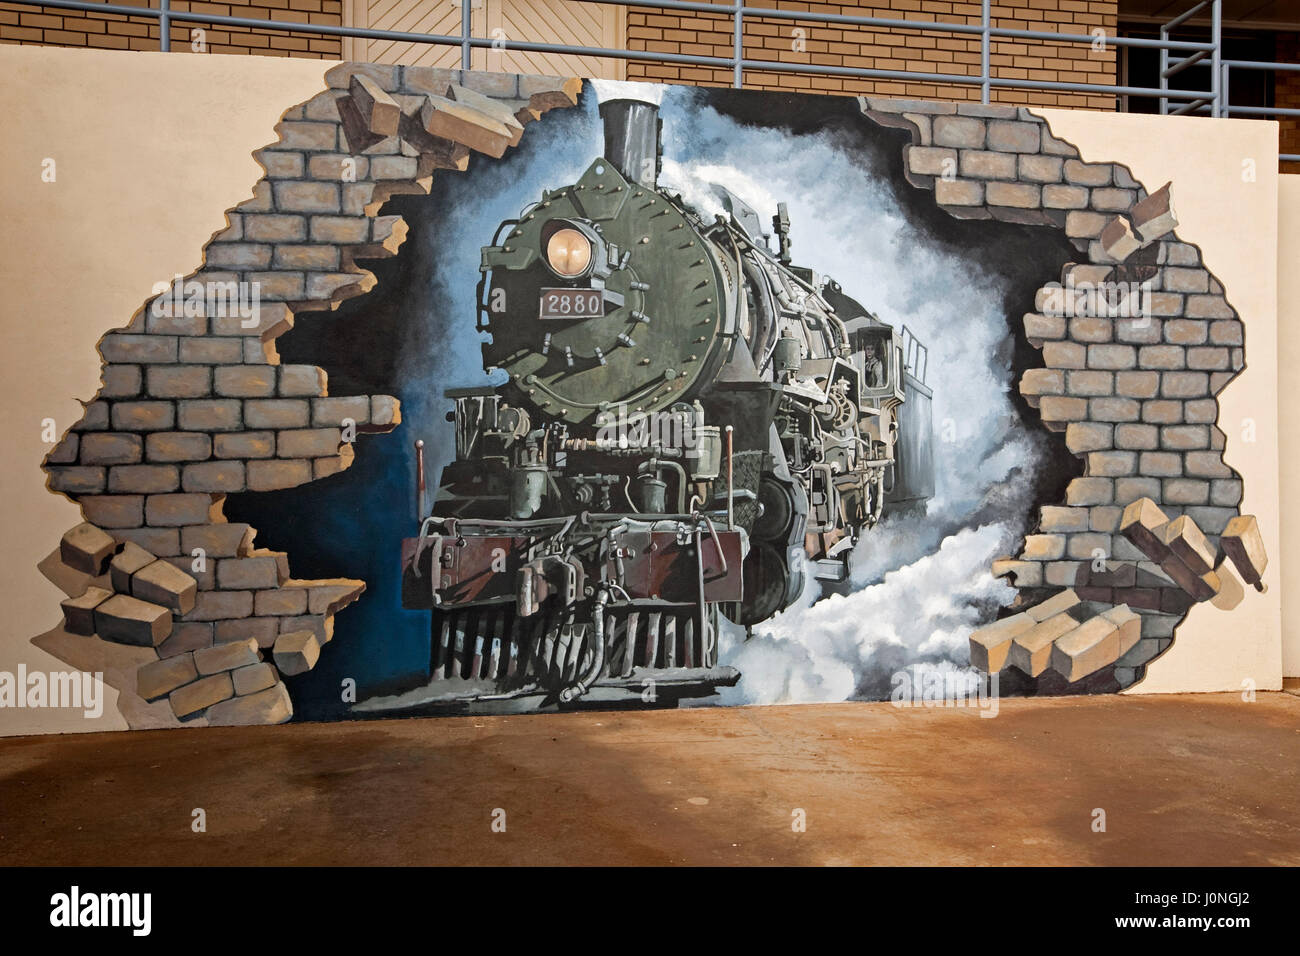 Large And Spectacular Mural Of Historic Steam Train Smashing Through Brick  Wall Of Building In Outback Town Of Broken Hill, NSW Australia Part 76